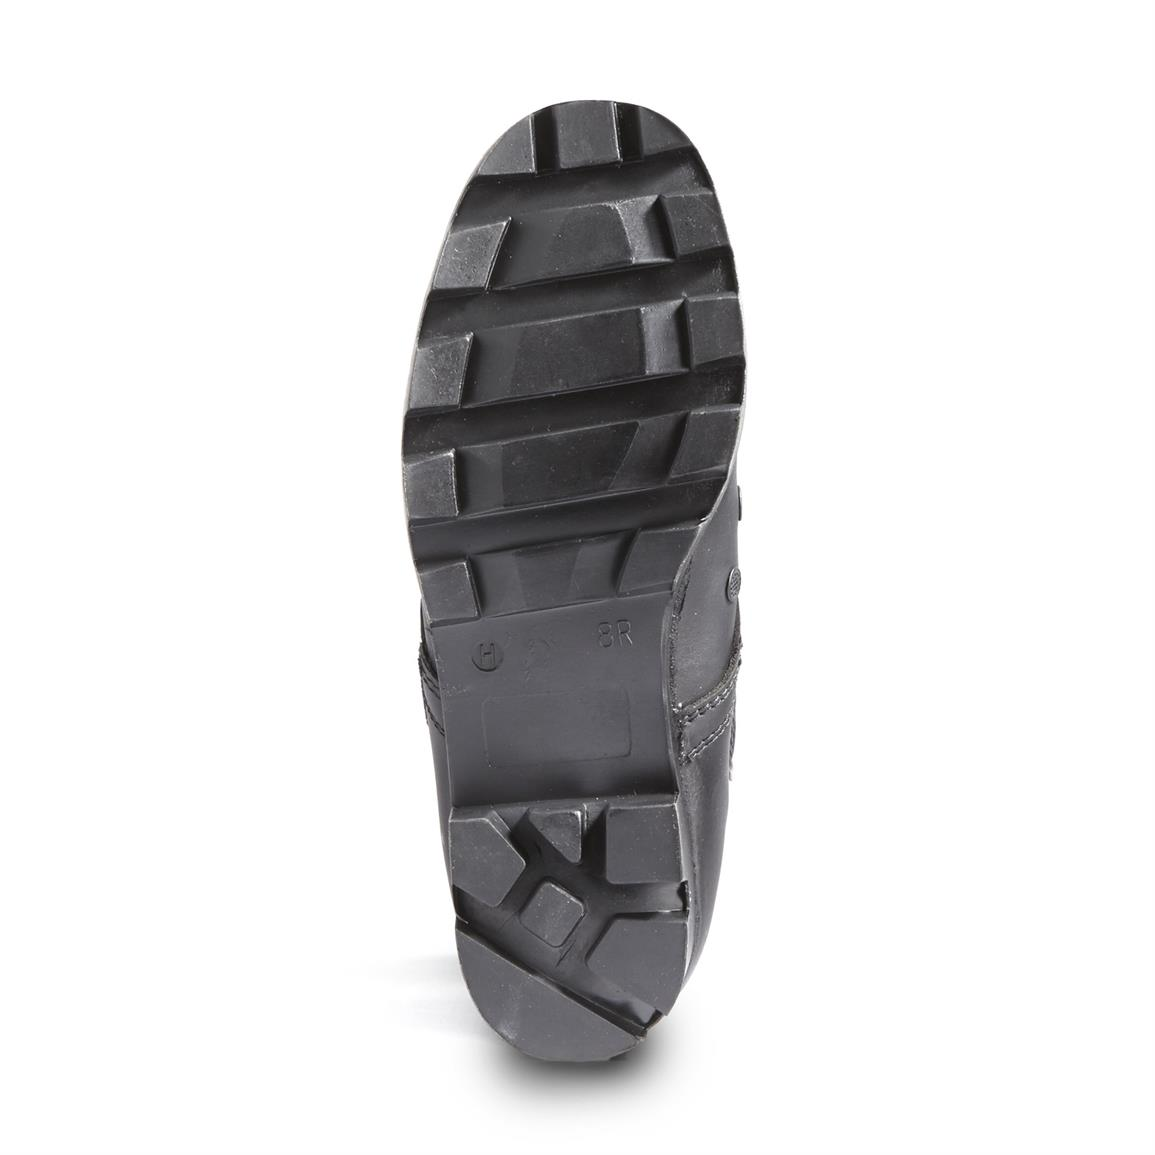 Rubber lug outsole offers traction and added support